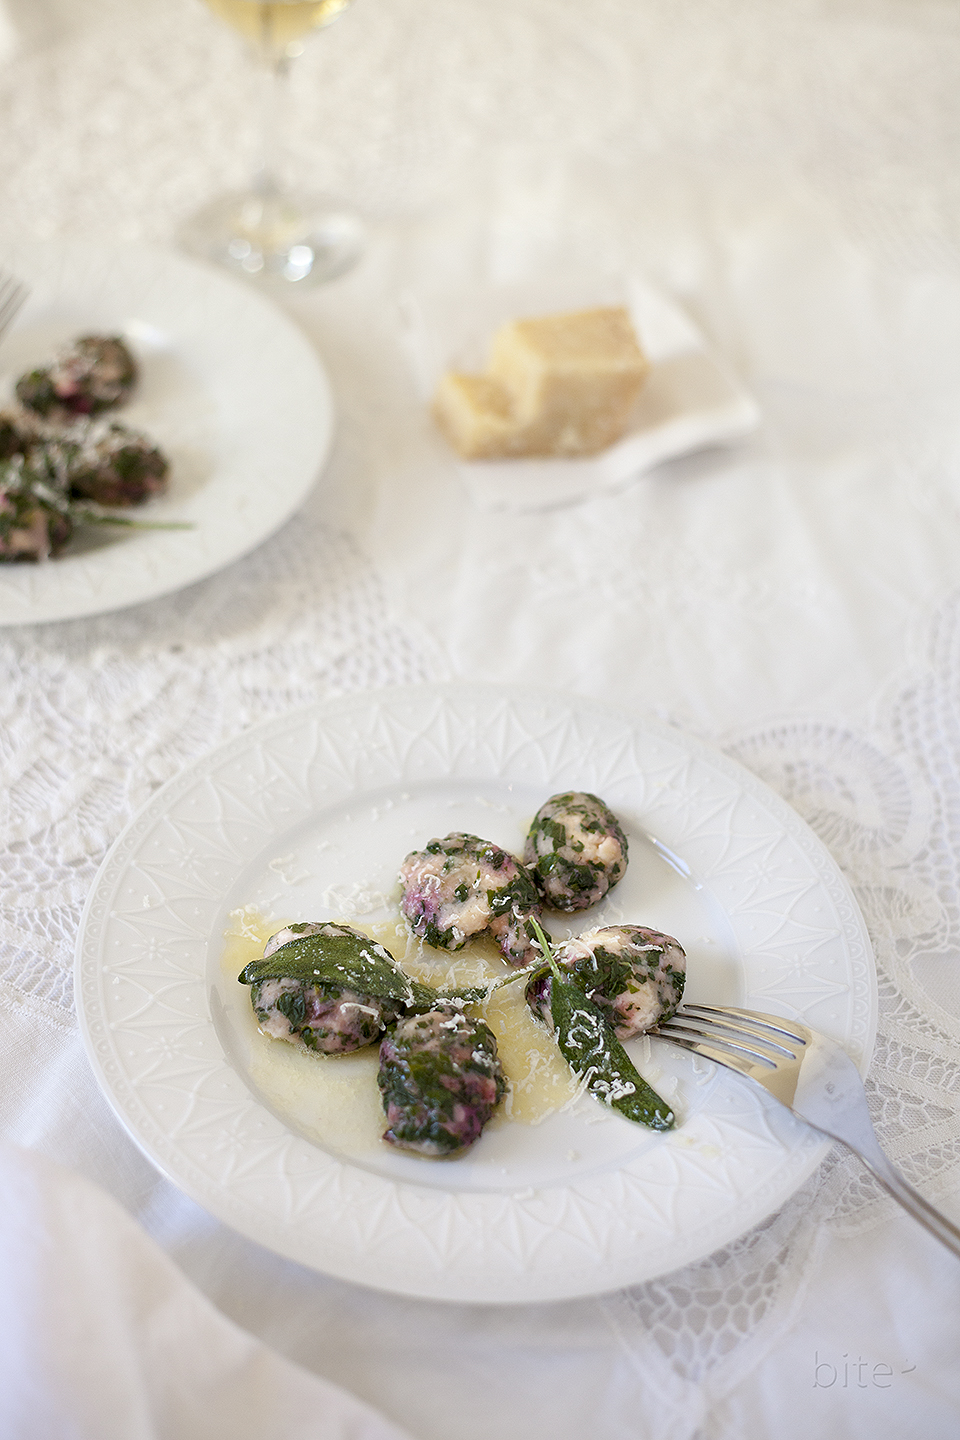 naked ravioli with homemade ricotta and beet greens